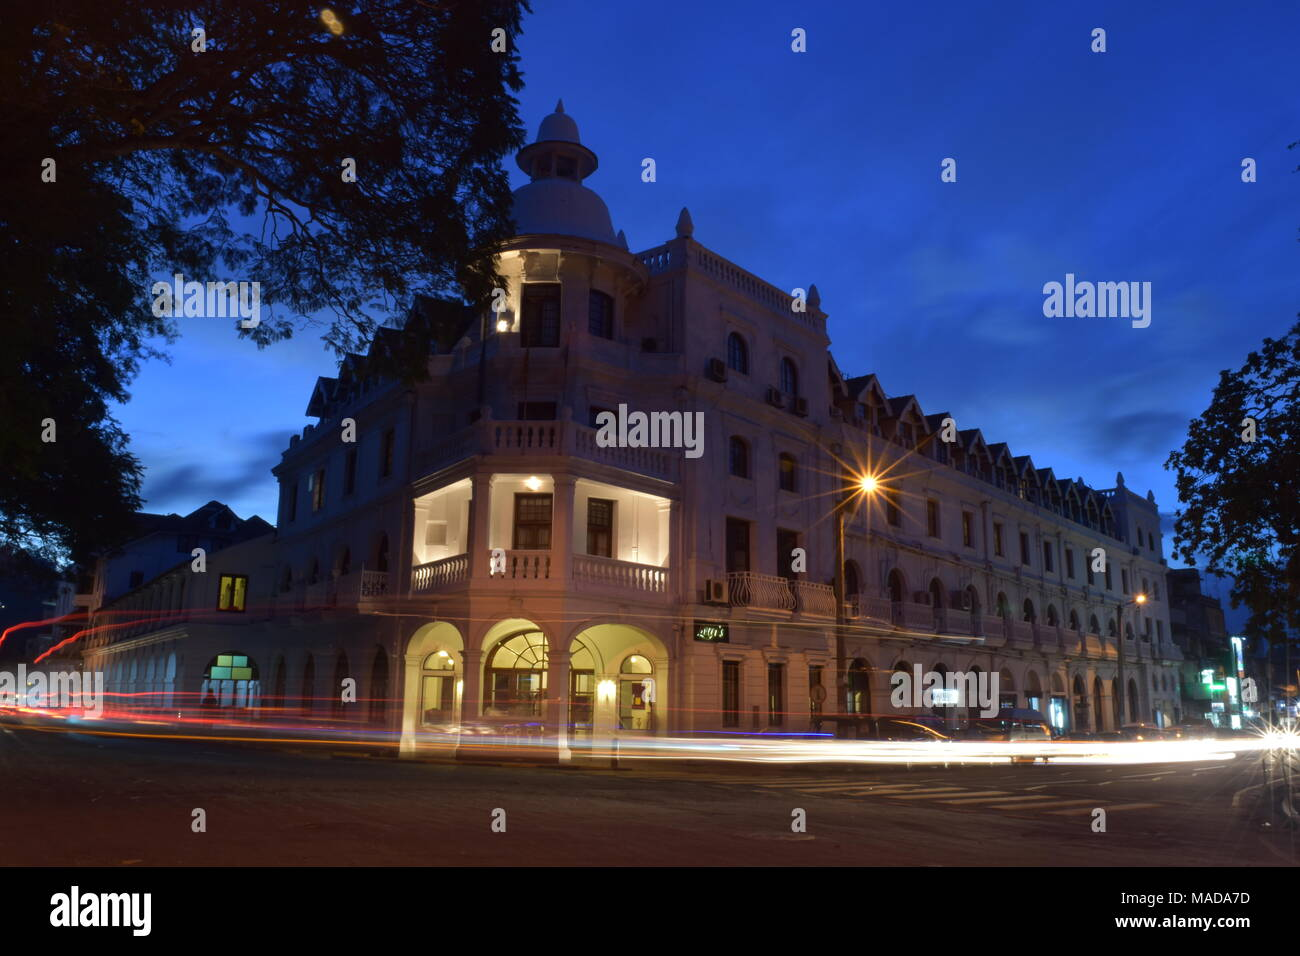 Kandy Queens Hotel - Stock Image